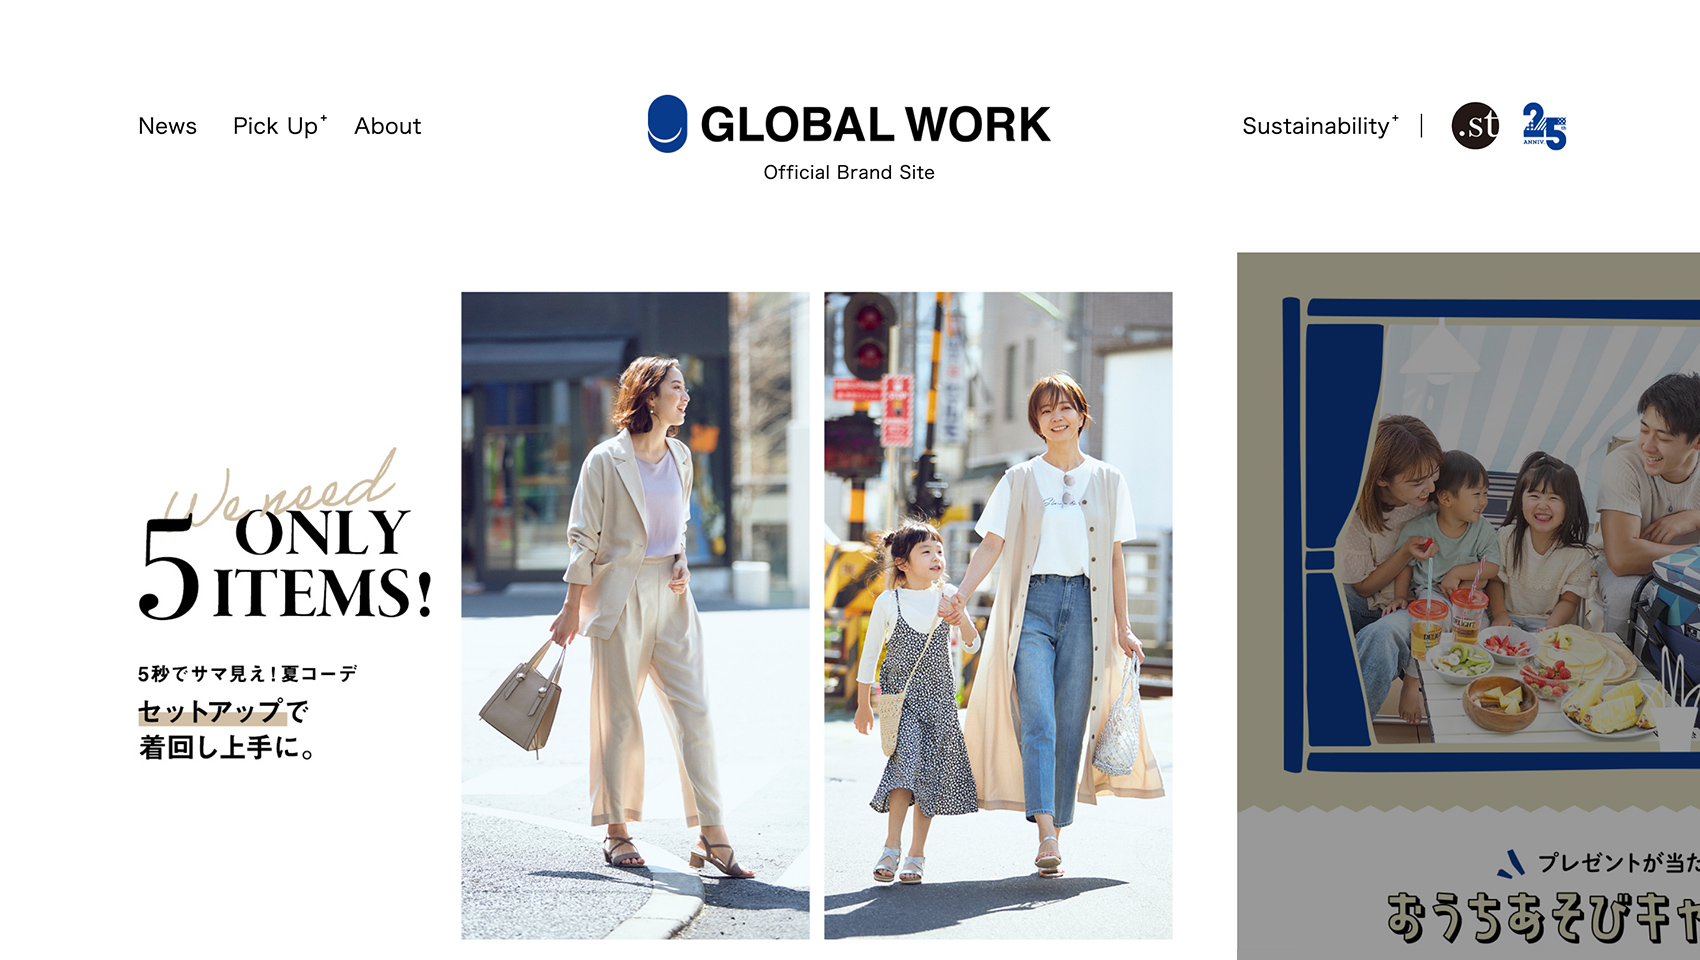 GLOBAL WORK Brand Site